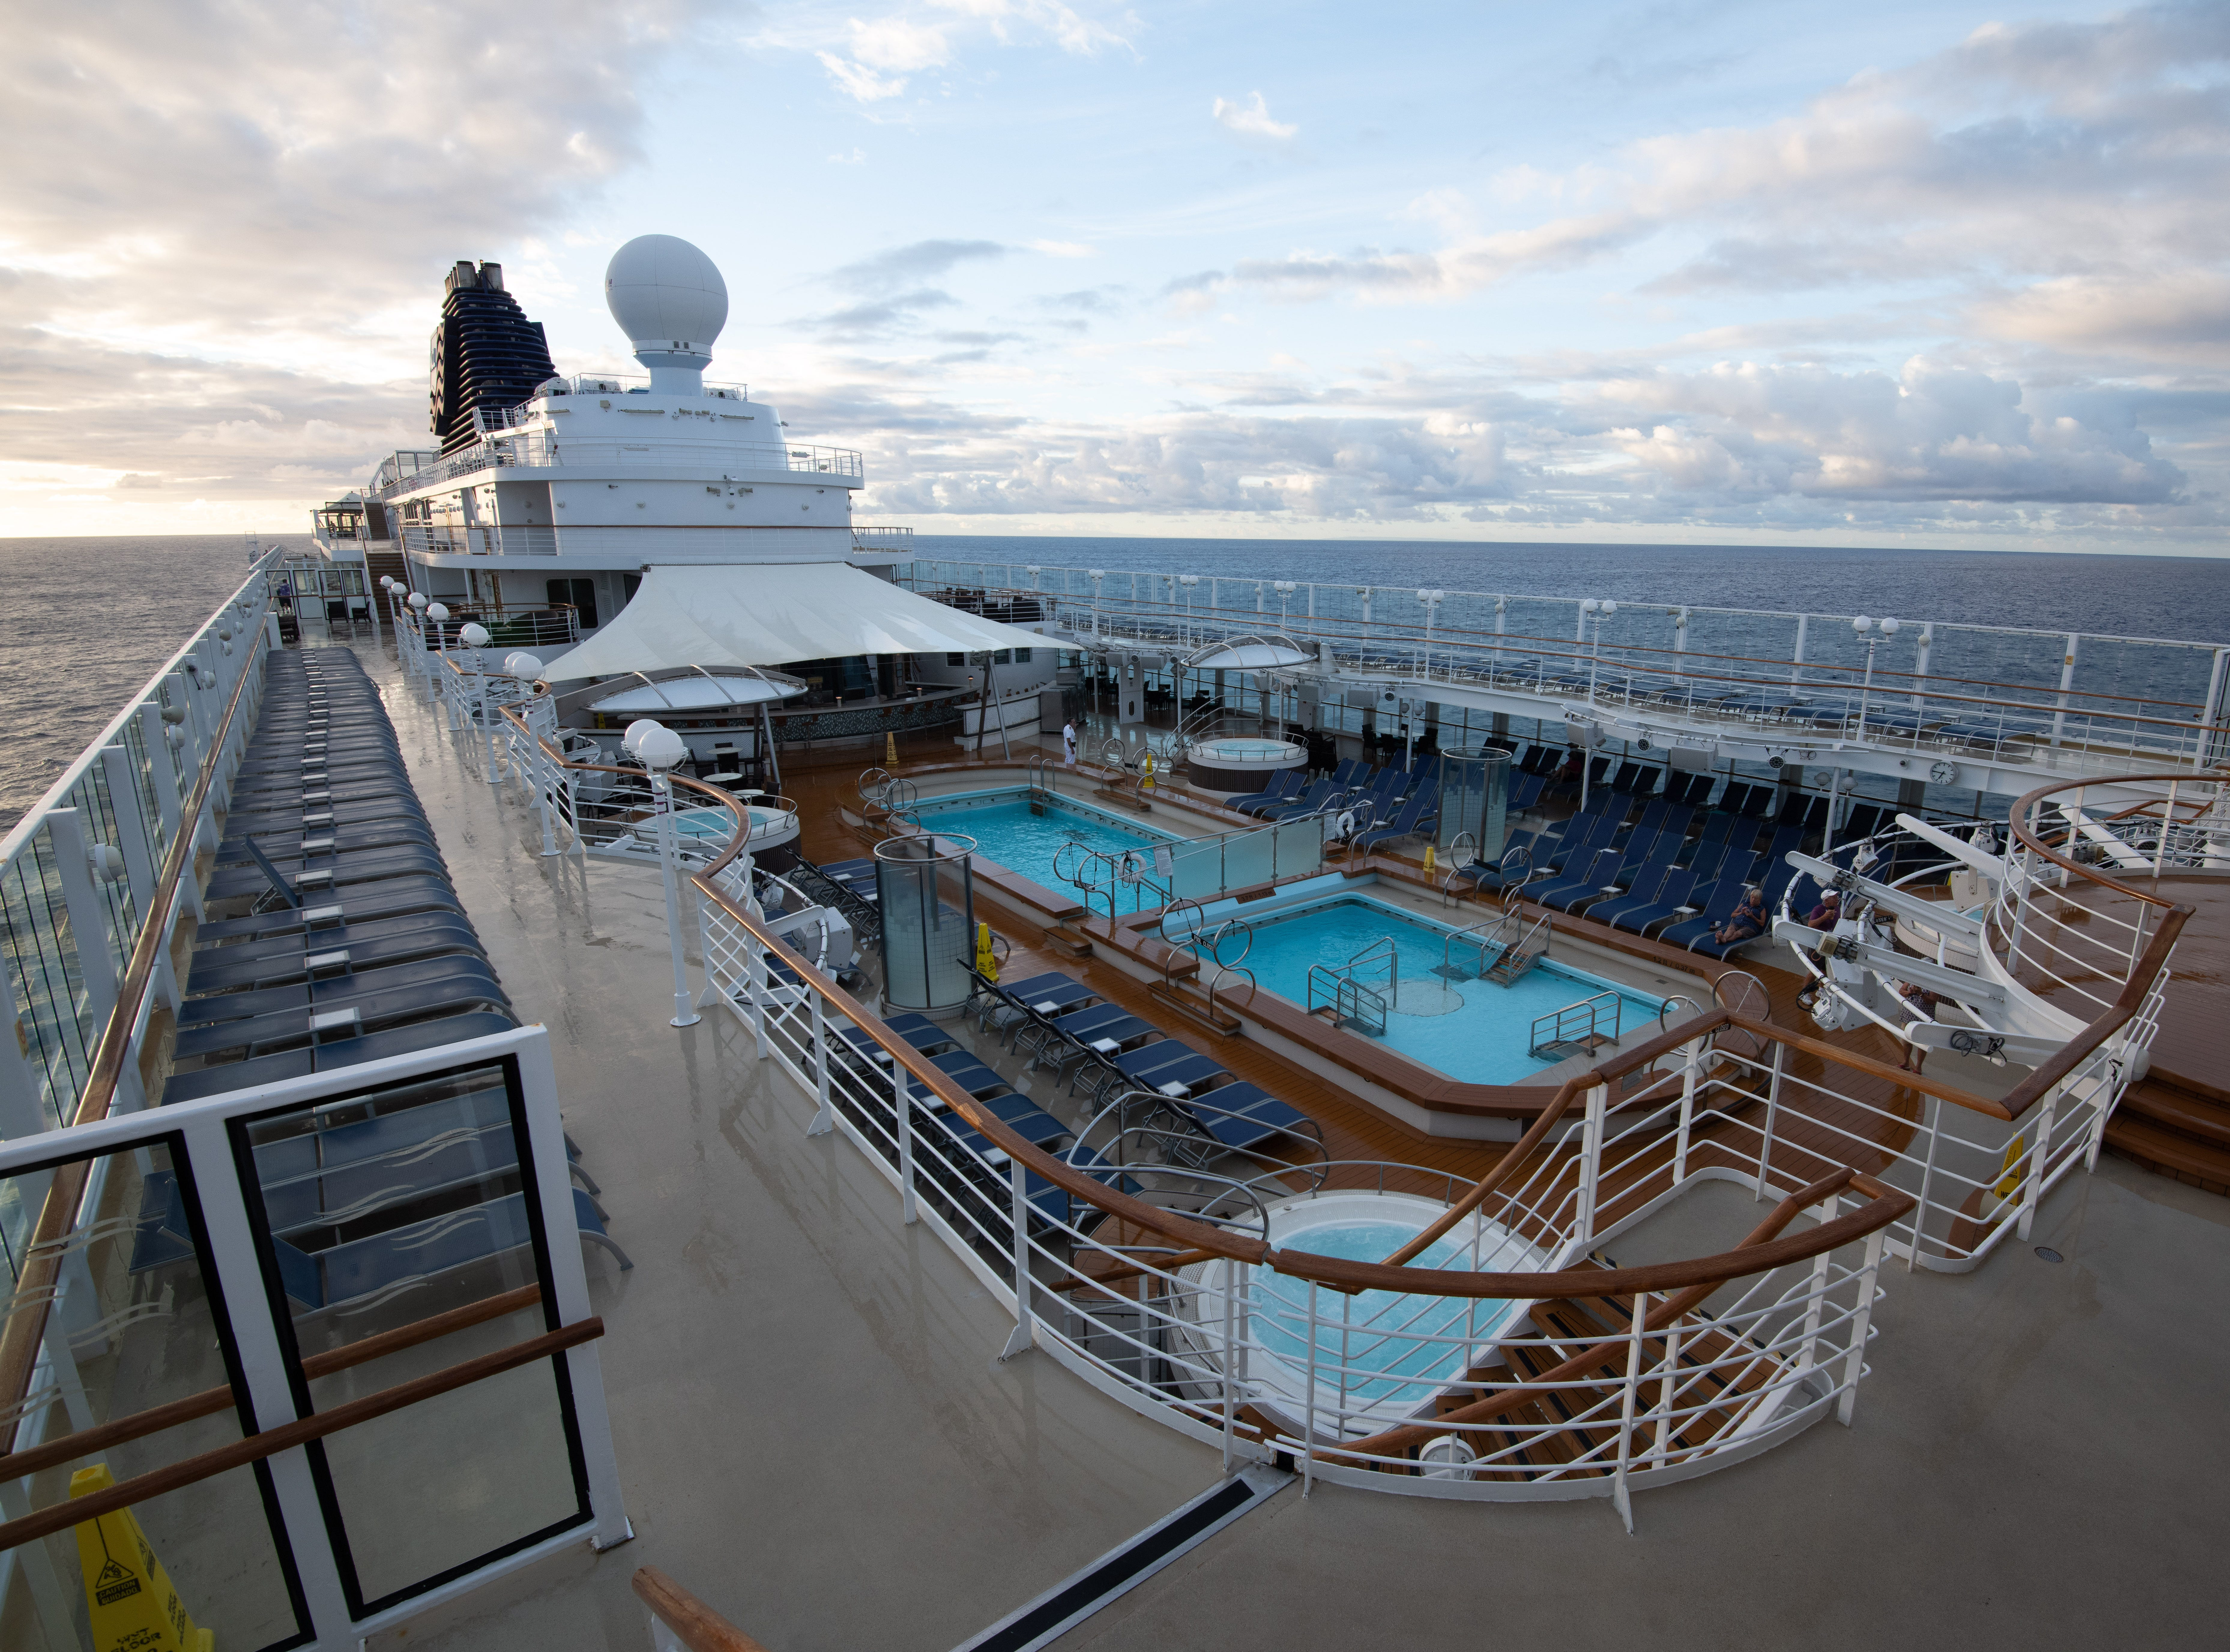 More lounge seating is available one deck up from the South Beach Pool zone along the sides of the ship.